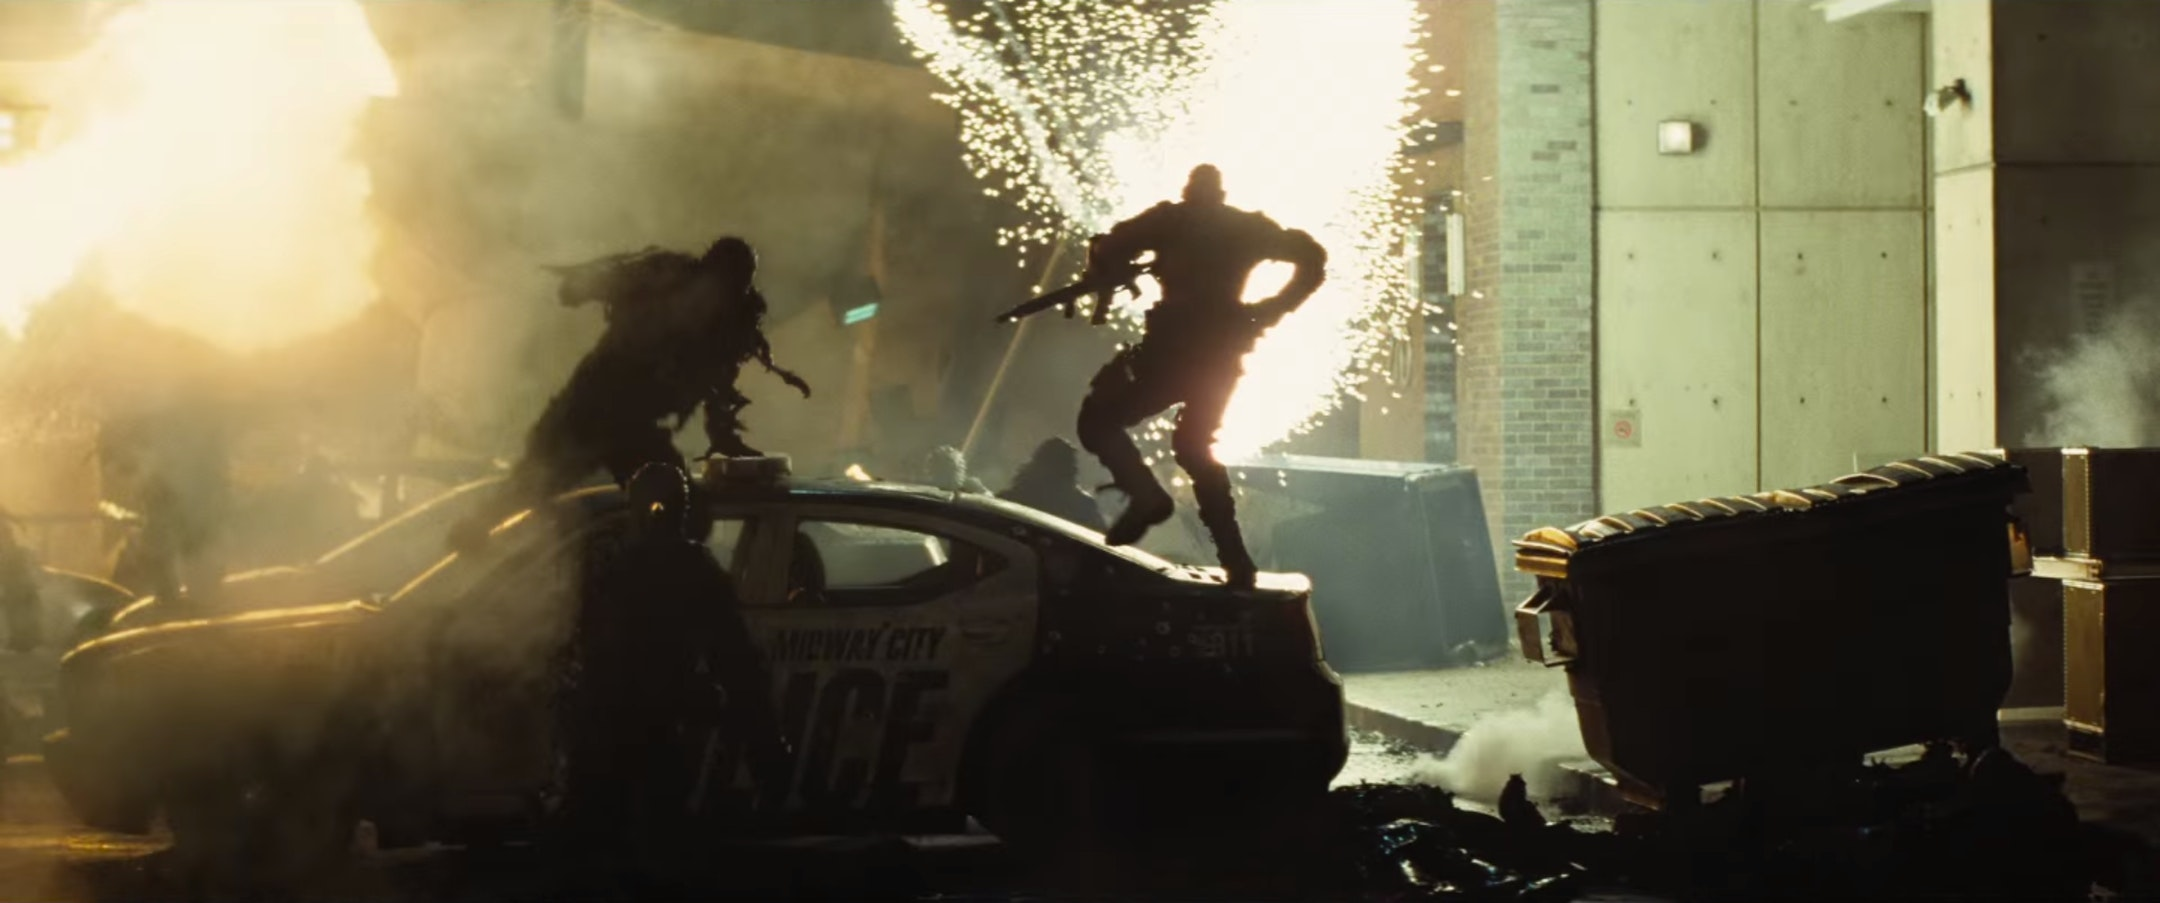 Deadshot (Will Smith) climbs atop a Midway City police car in the 'Suicide Squad' trailer.